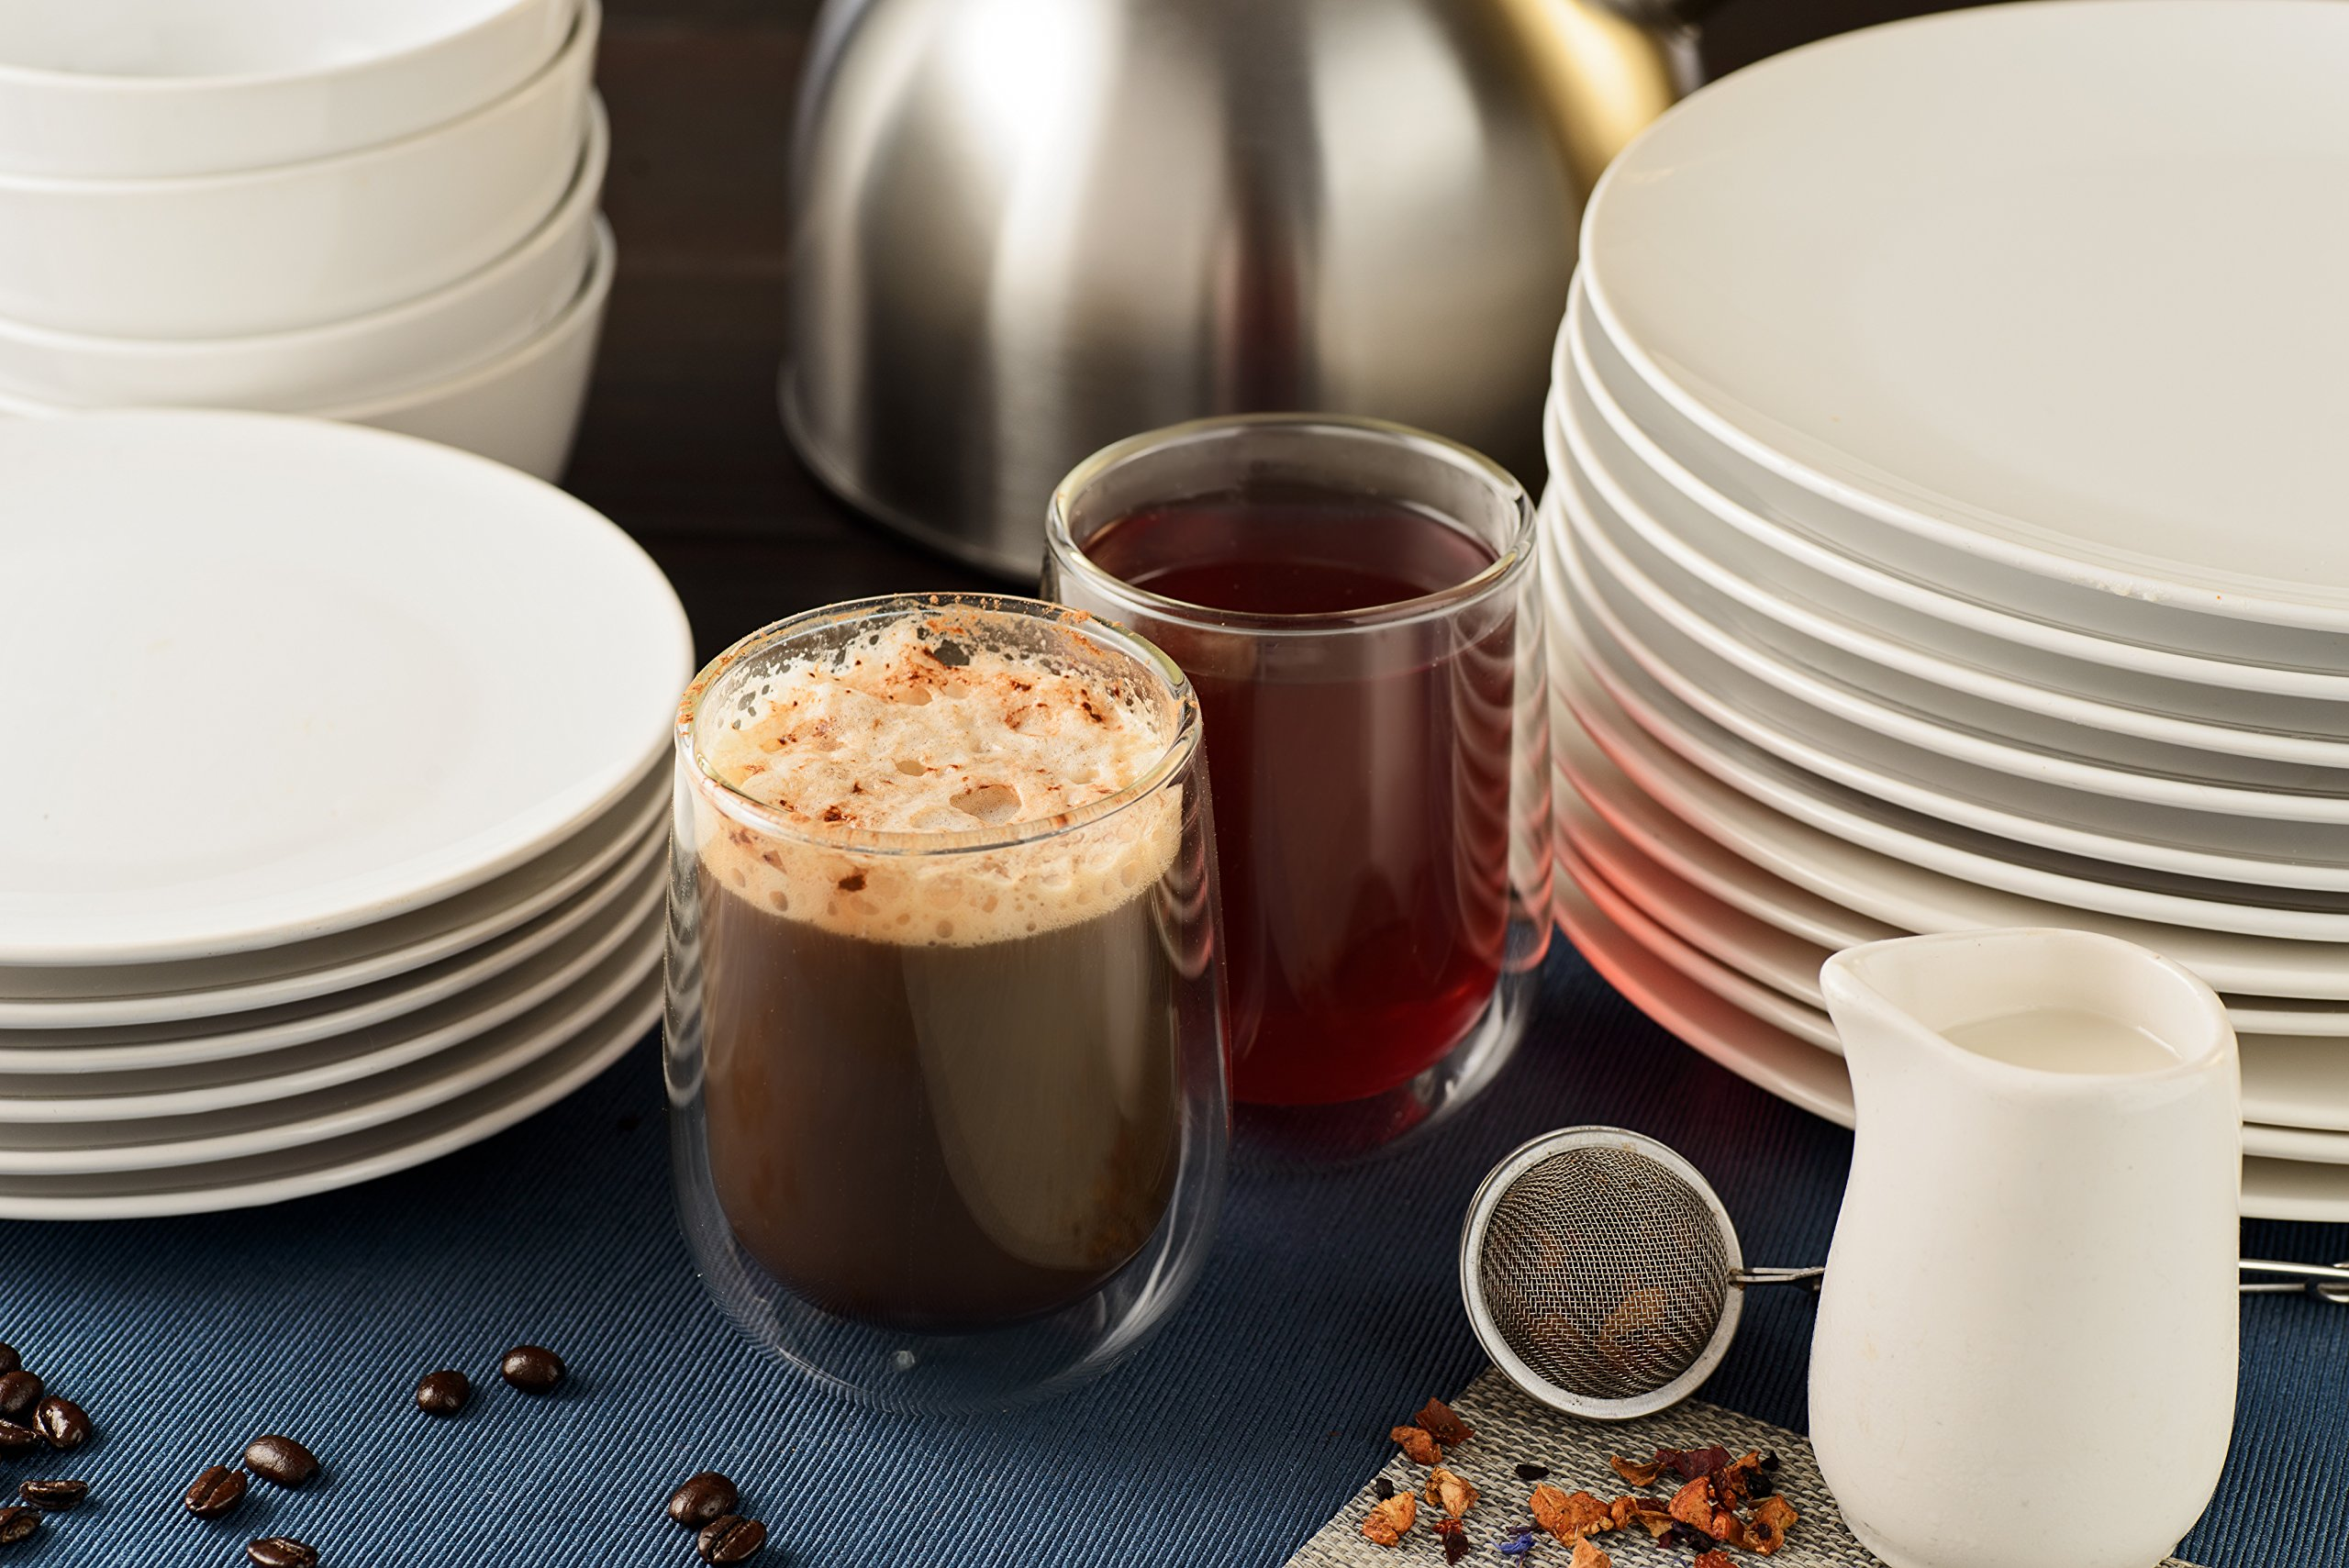 Double Walled Coffee or Tea Glasses, Perfect Espresso Cappuccino Cups or Latte Mugs, Thermo Insulated Premium Quality Borosilicate Glass, Set of 2 (12.1 oz, 360 ml), by HomeKitchenStar by HomeKitchenStar (Image #7)